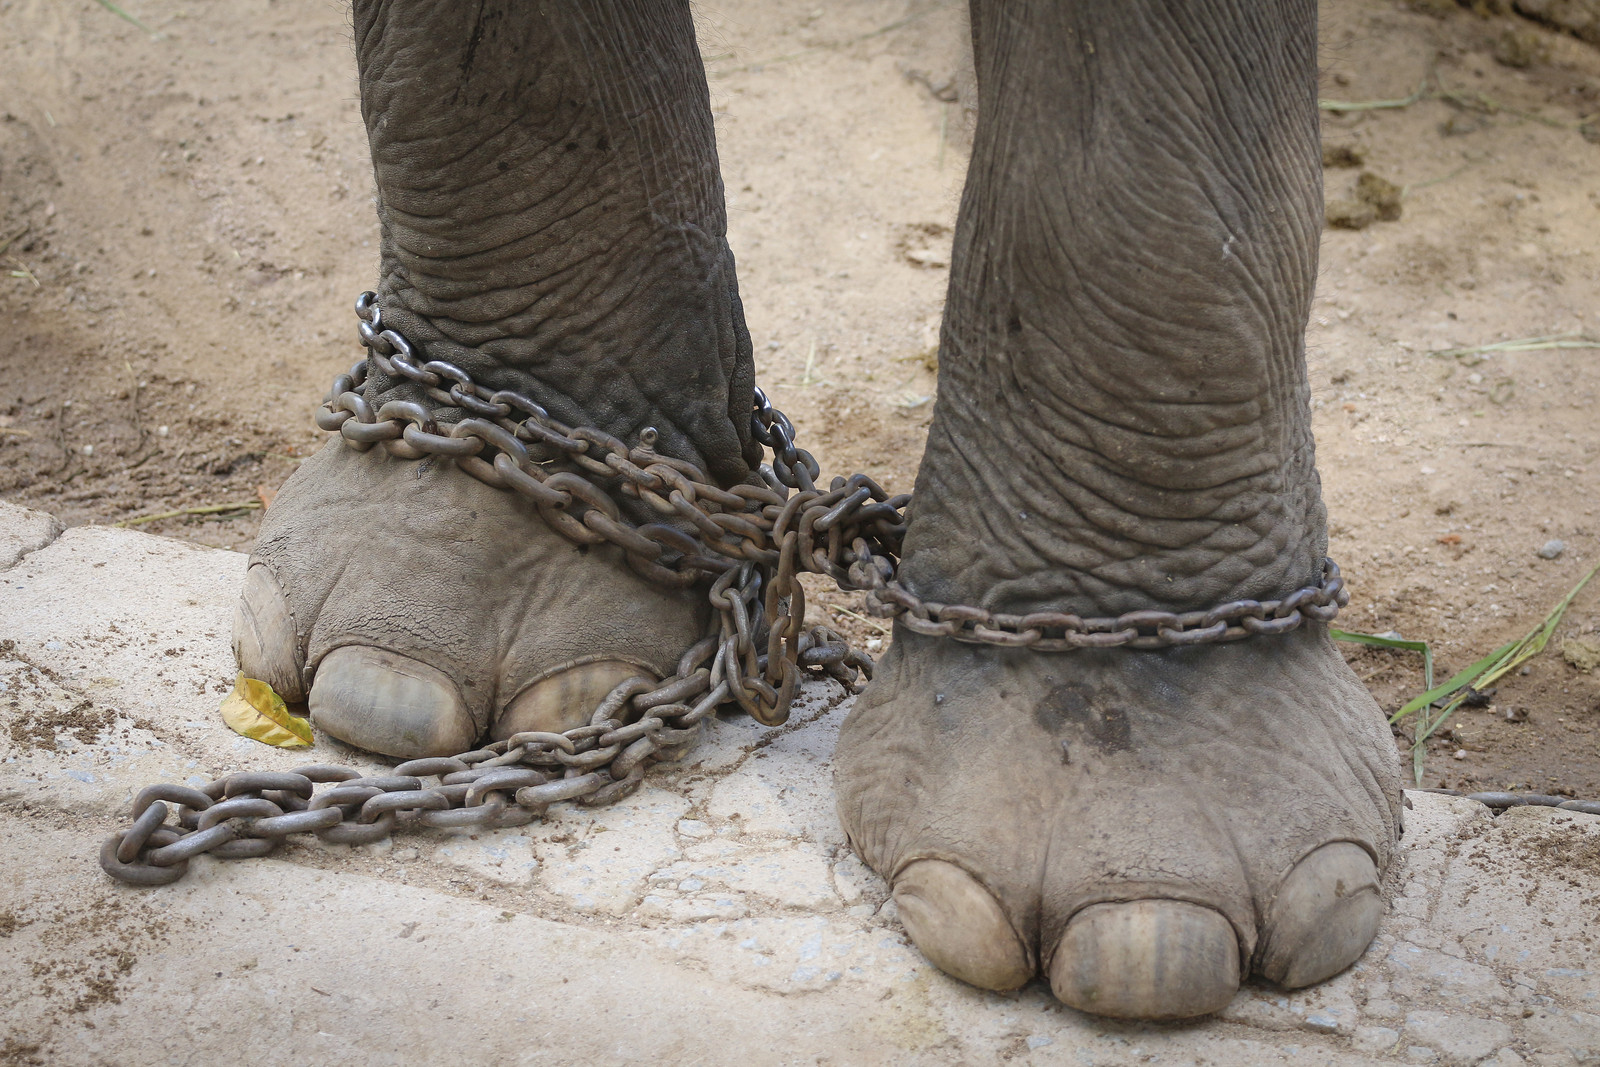 Animals in Entertainment: Why Are Animals Used for Entertainment?